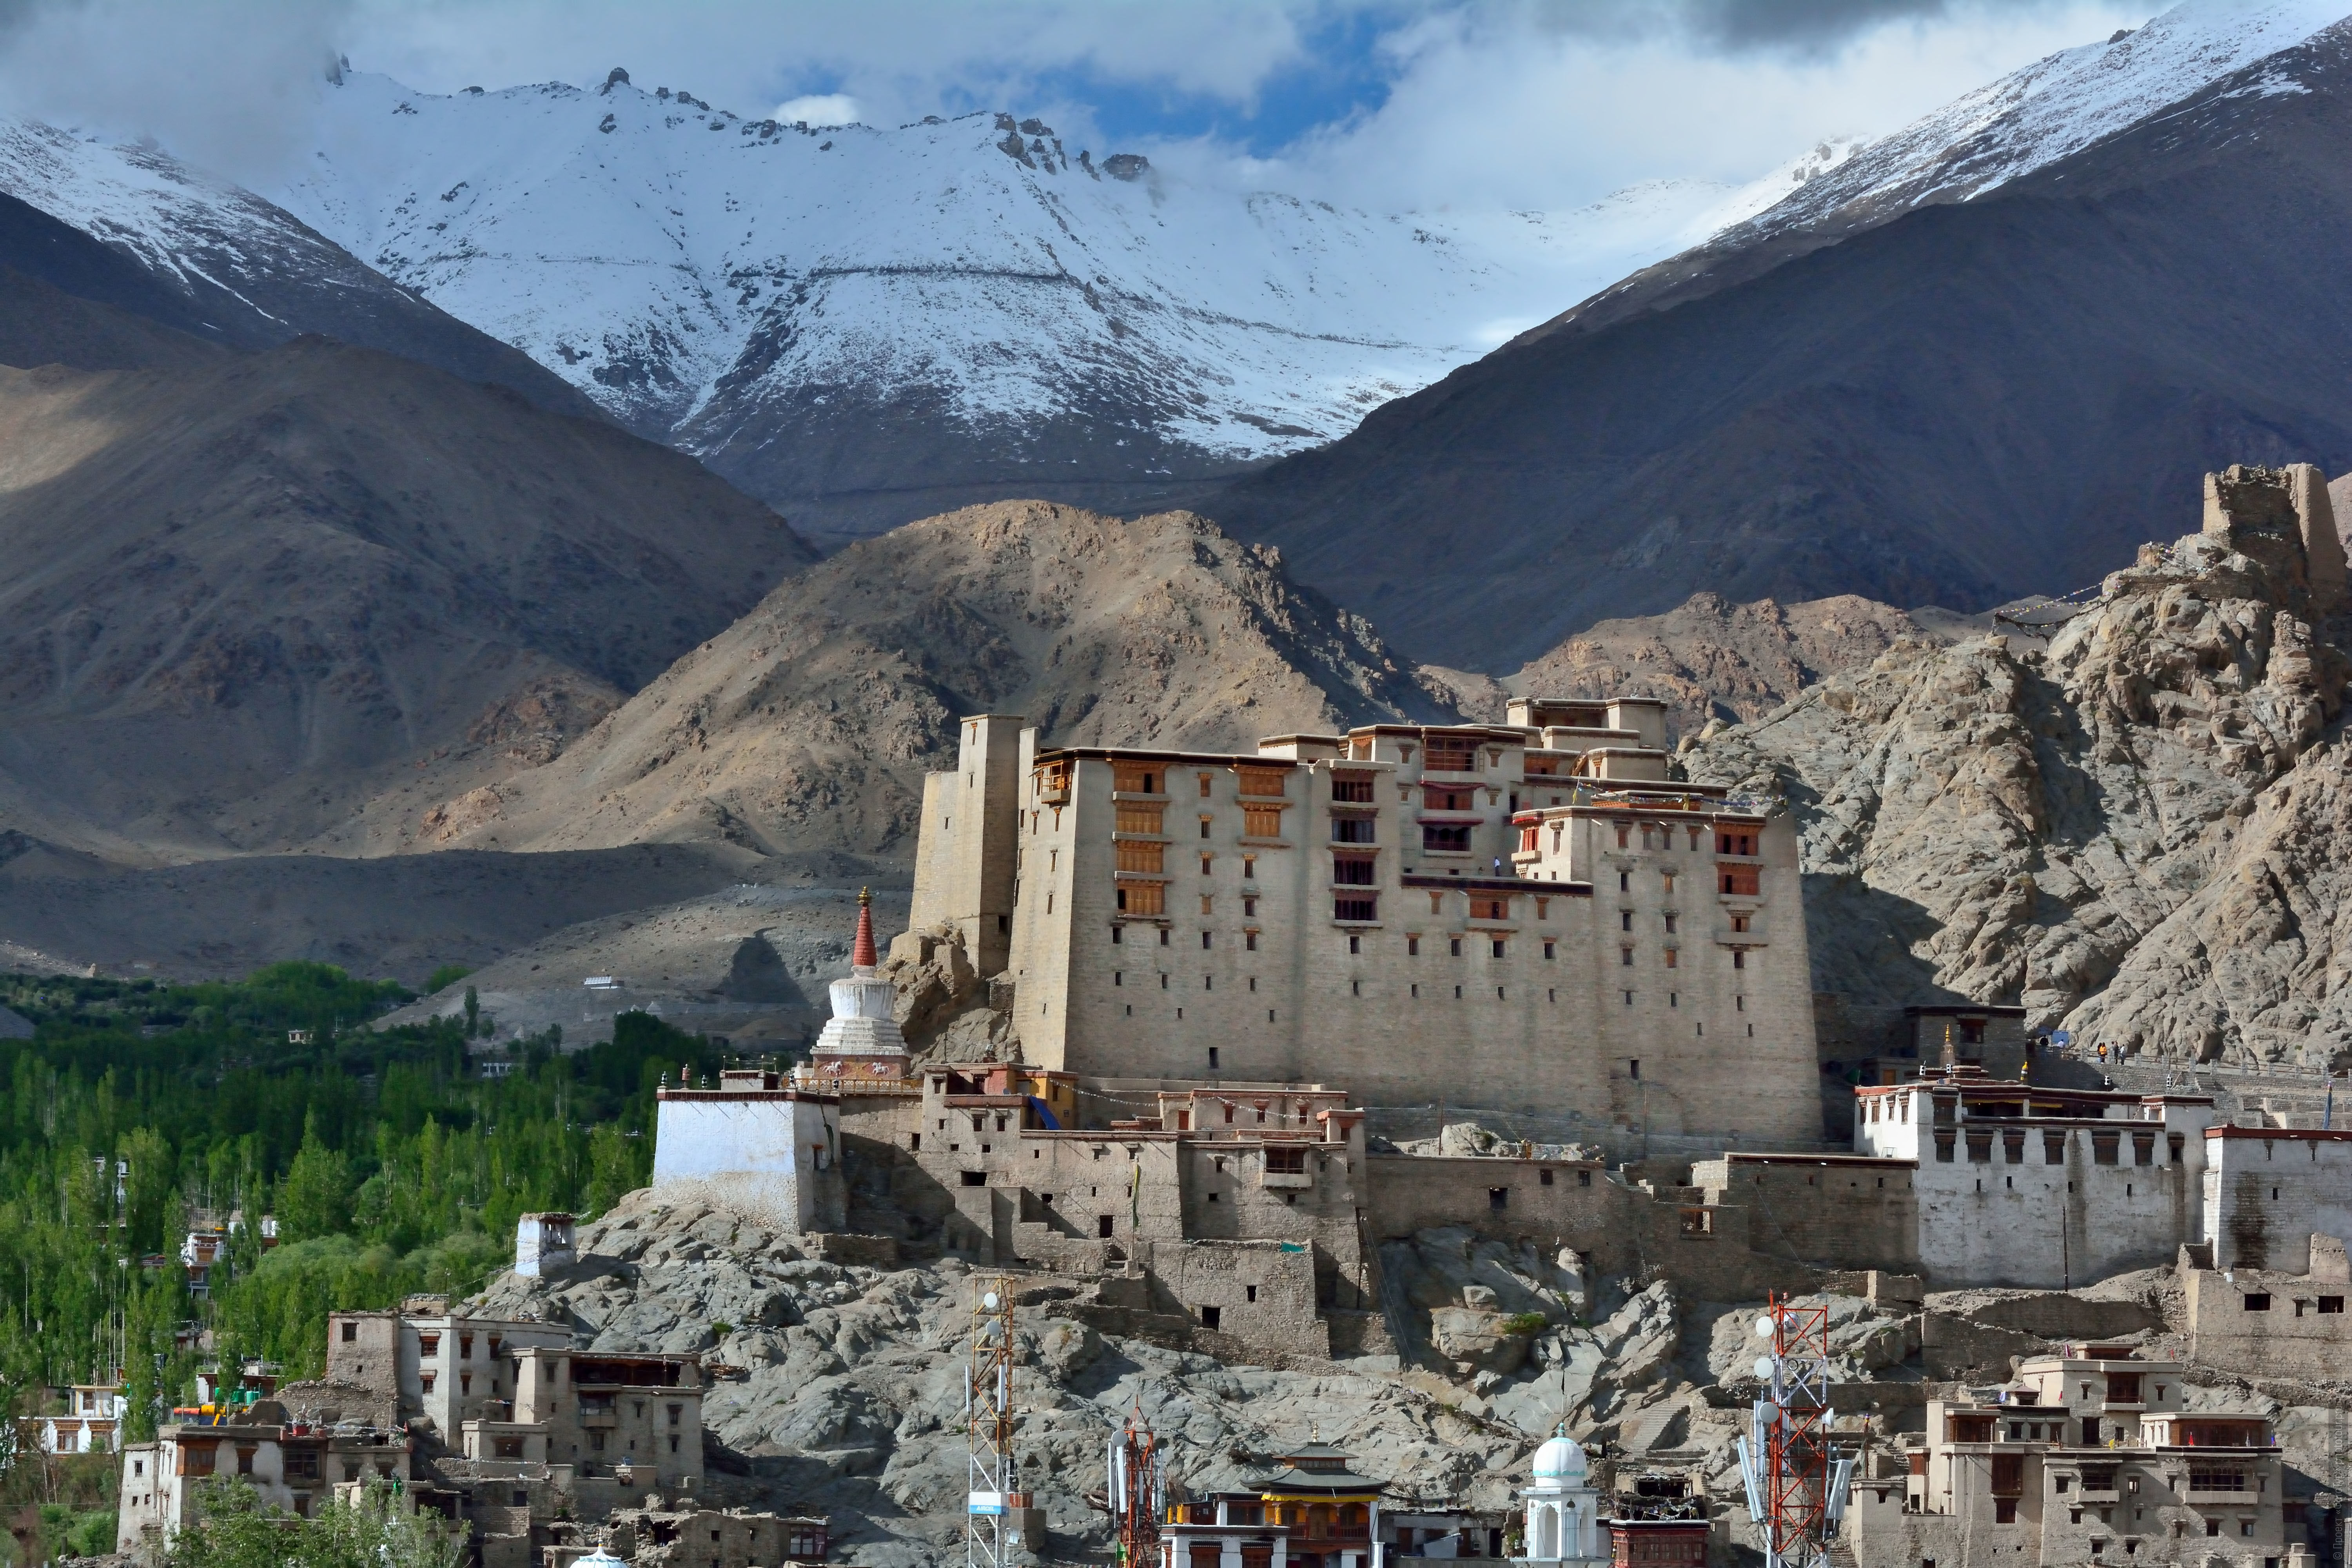 Royal Leh Palace, Ladakh. Photo tour / tour Tibet of Lake-1: Pangong, Tso Moriri, Tso Kar, Tso Chiagar, Dance of Tsam on Lake Pangong, 19.06. - 28.06.2021.